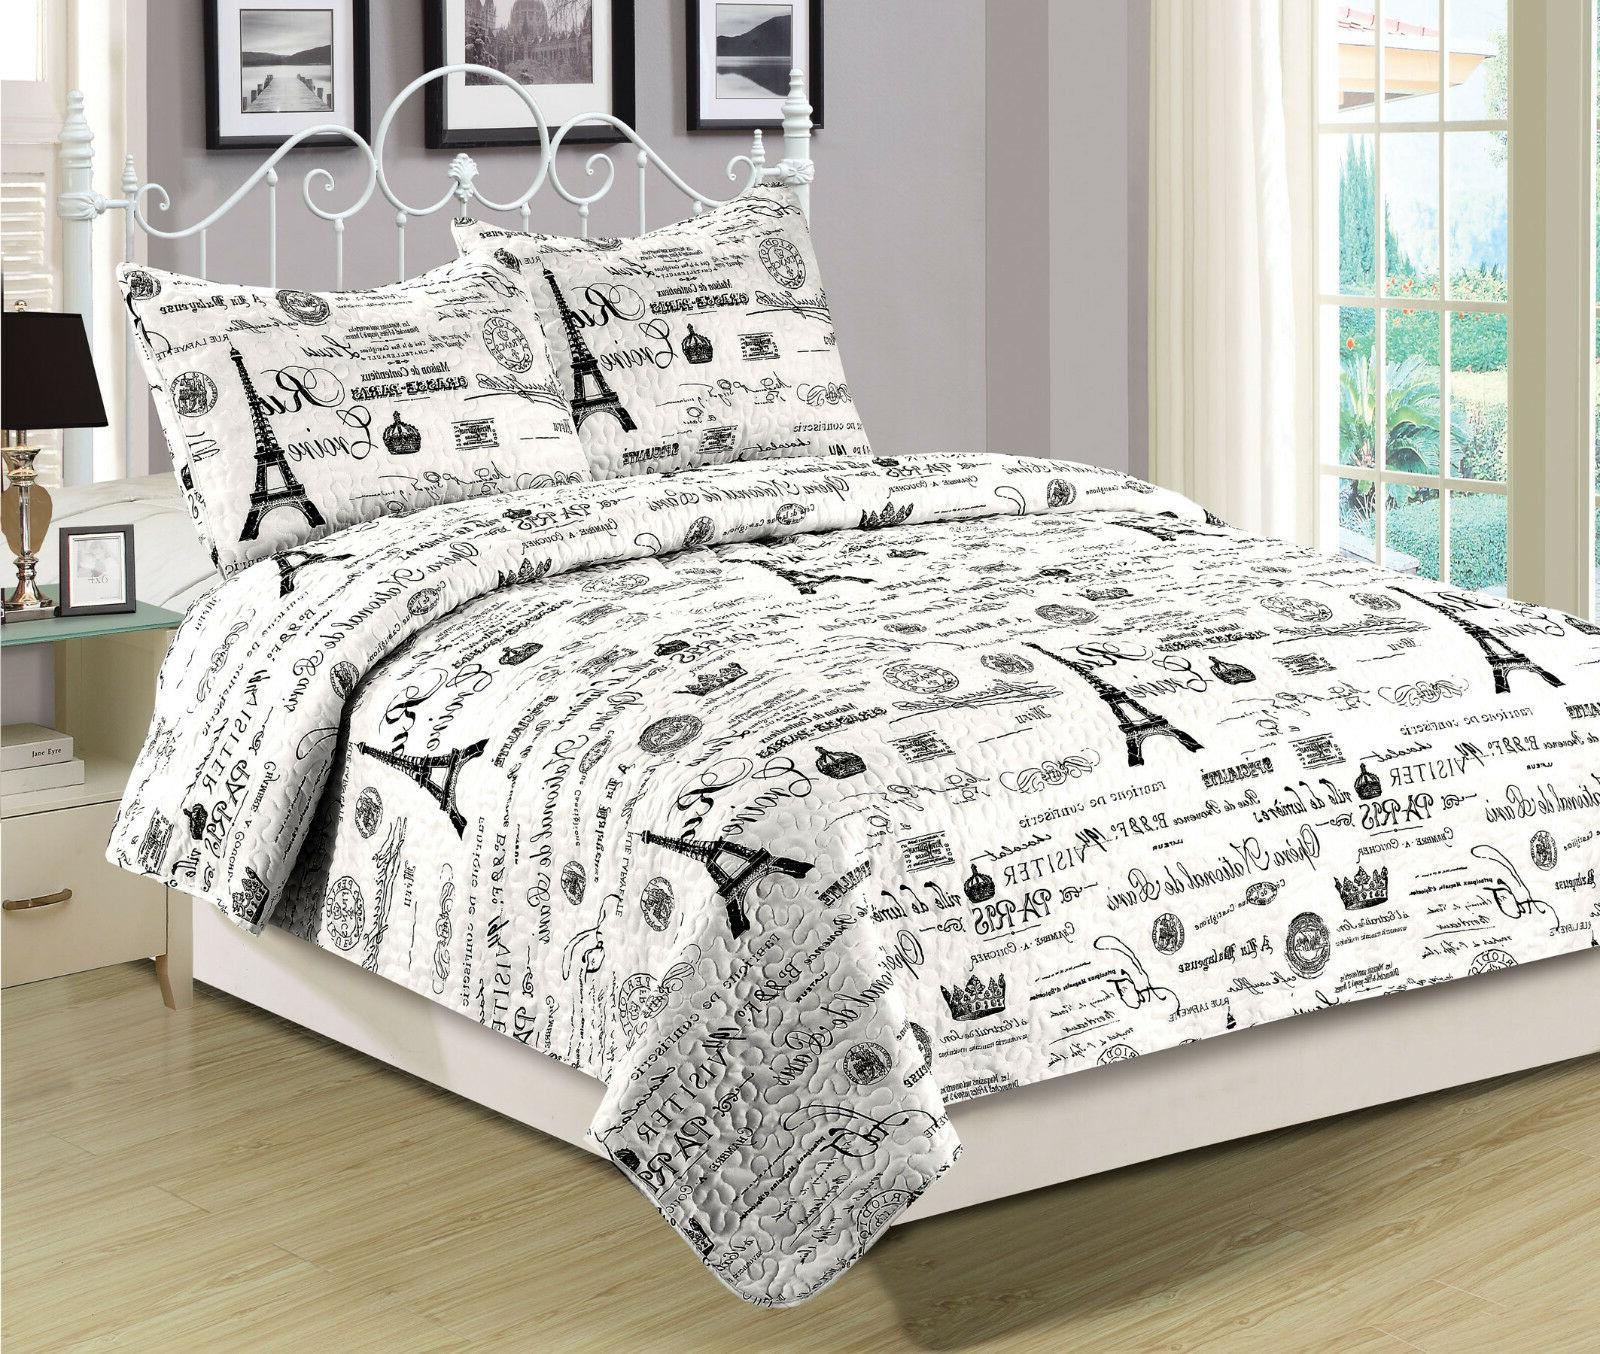 twin queen or king size bedding quilt